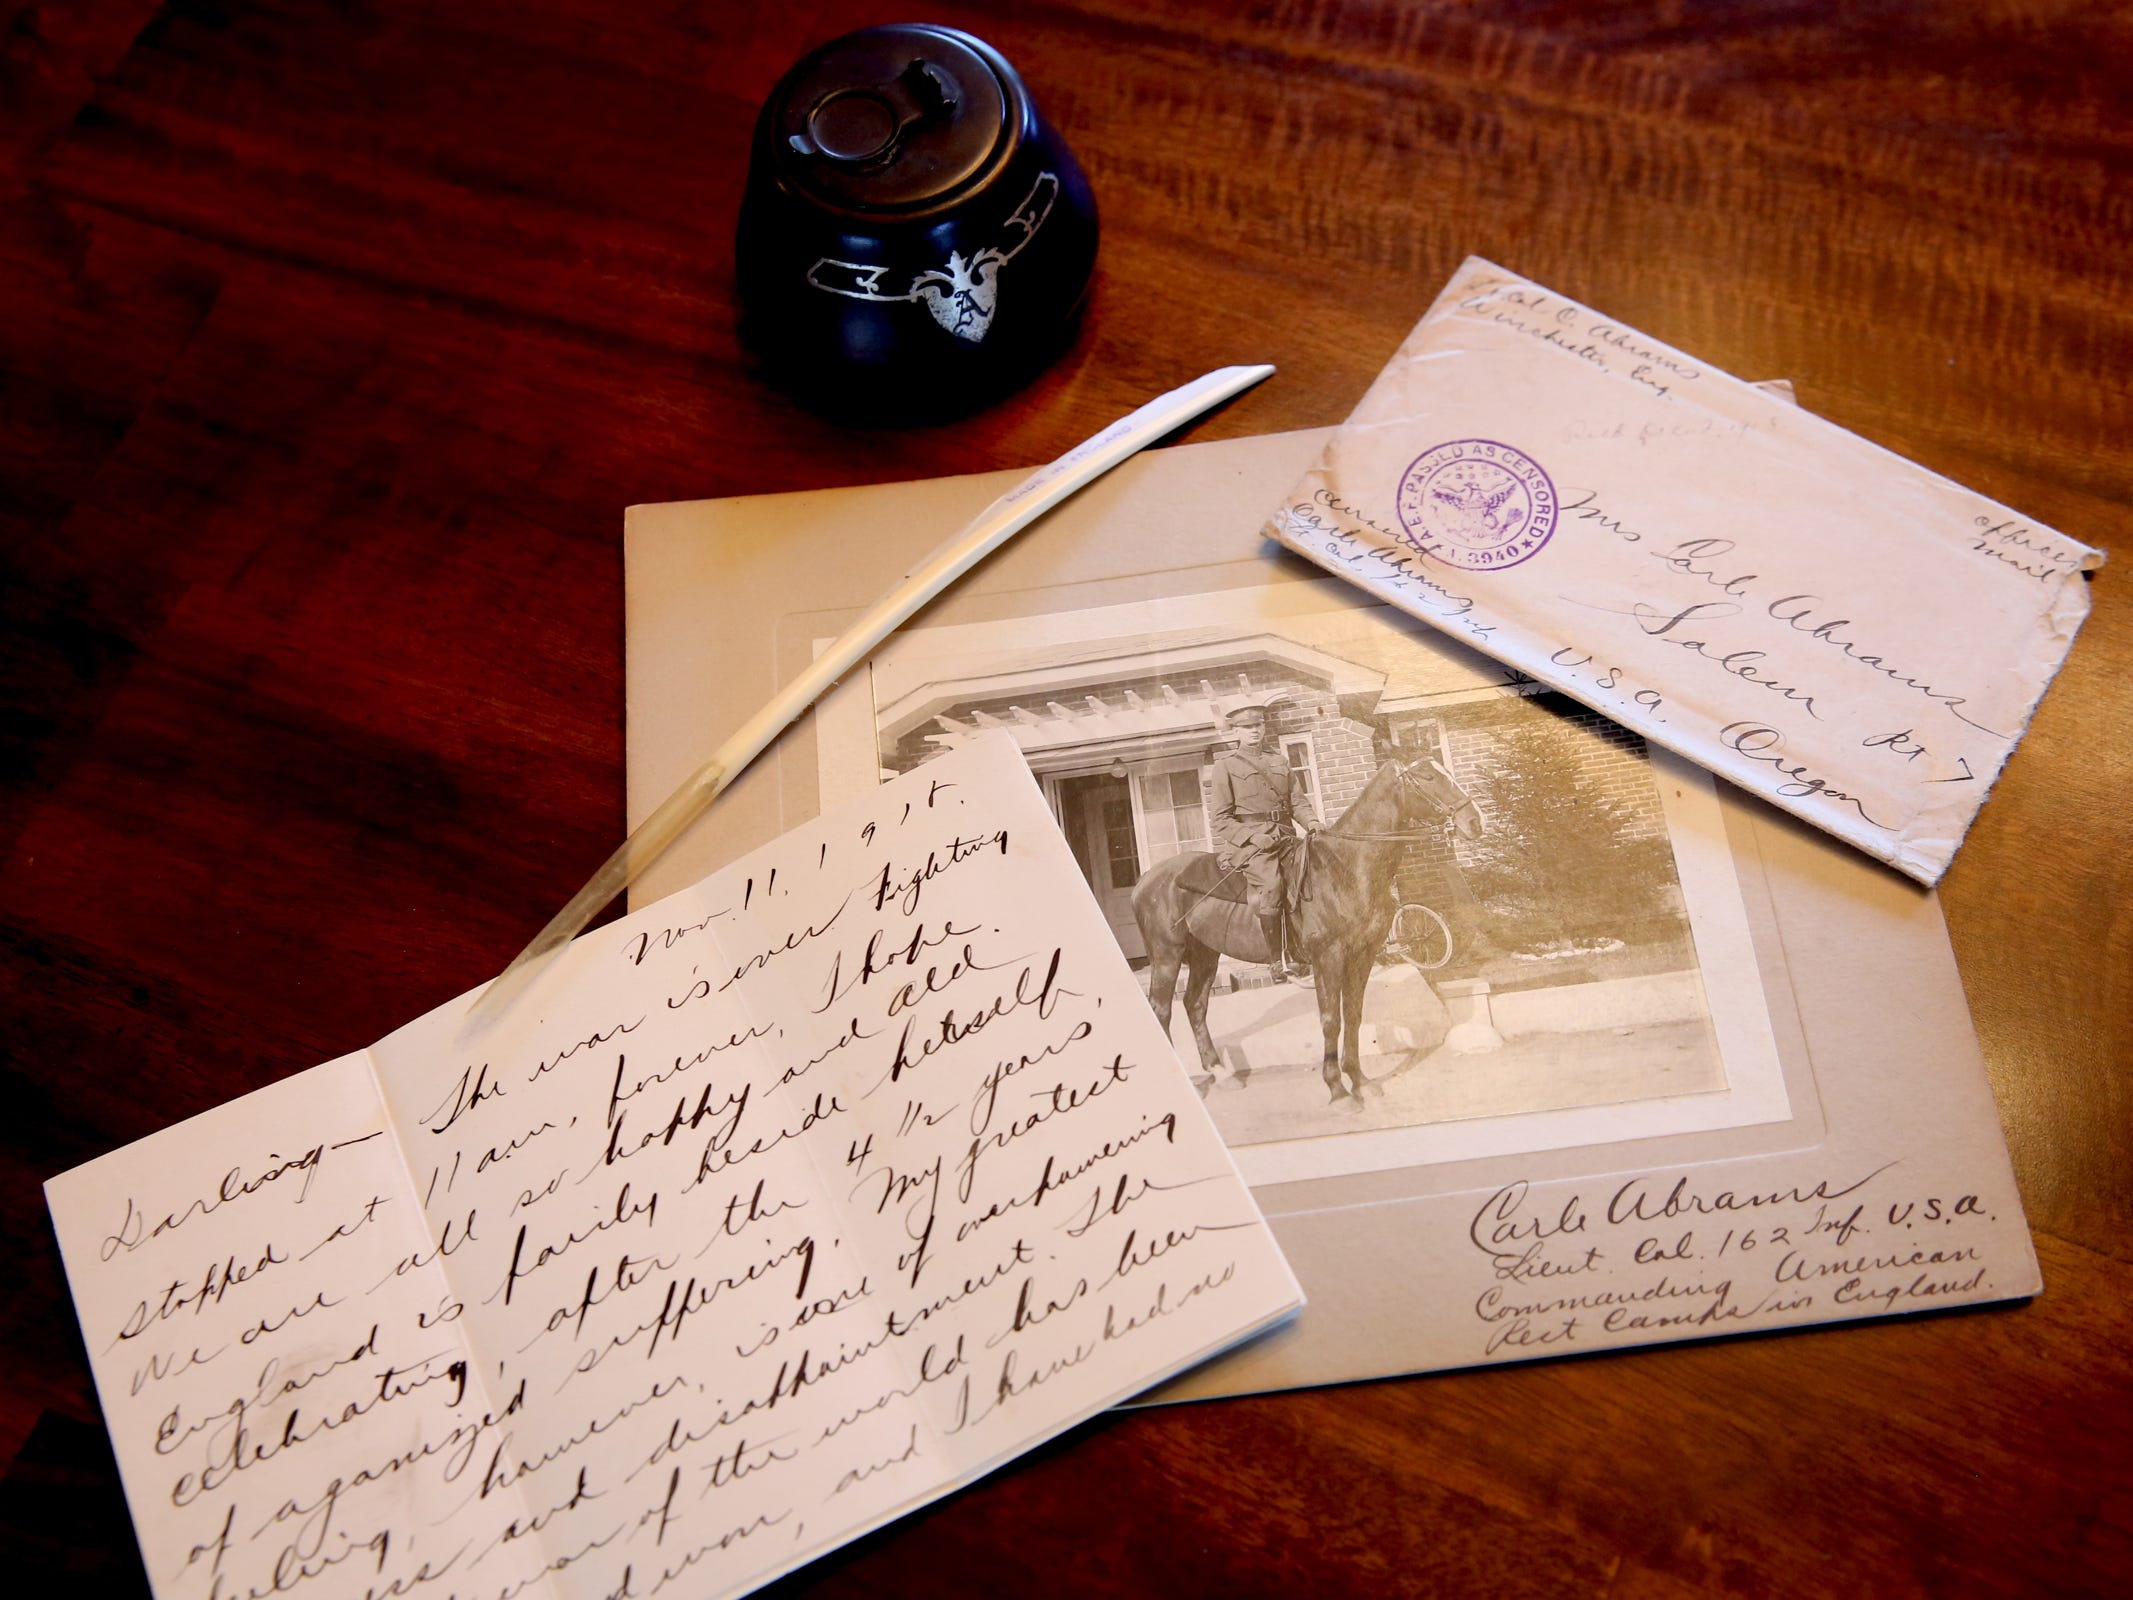 WWI-era letters and a photo of Lt. Col. Carle Abrams, the grandfather of Sue Baker. Baker has letters by her grandfather to her grandmother during WWI, including one written on the last day of the war. Photographed at Baker's West Salem home on Monday, Oct. 29, 2018.